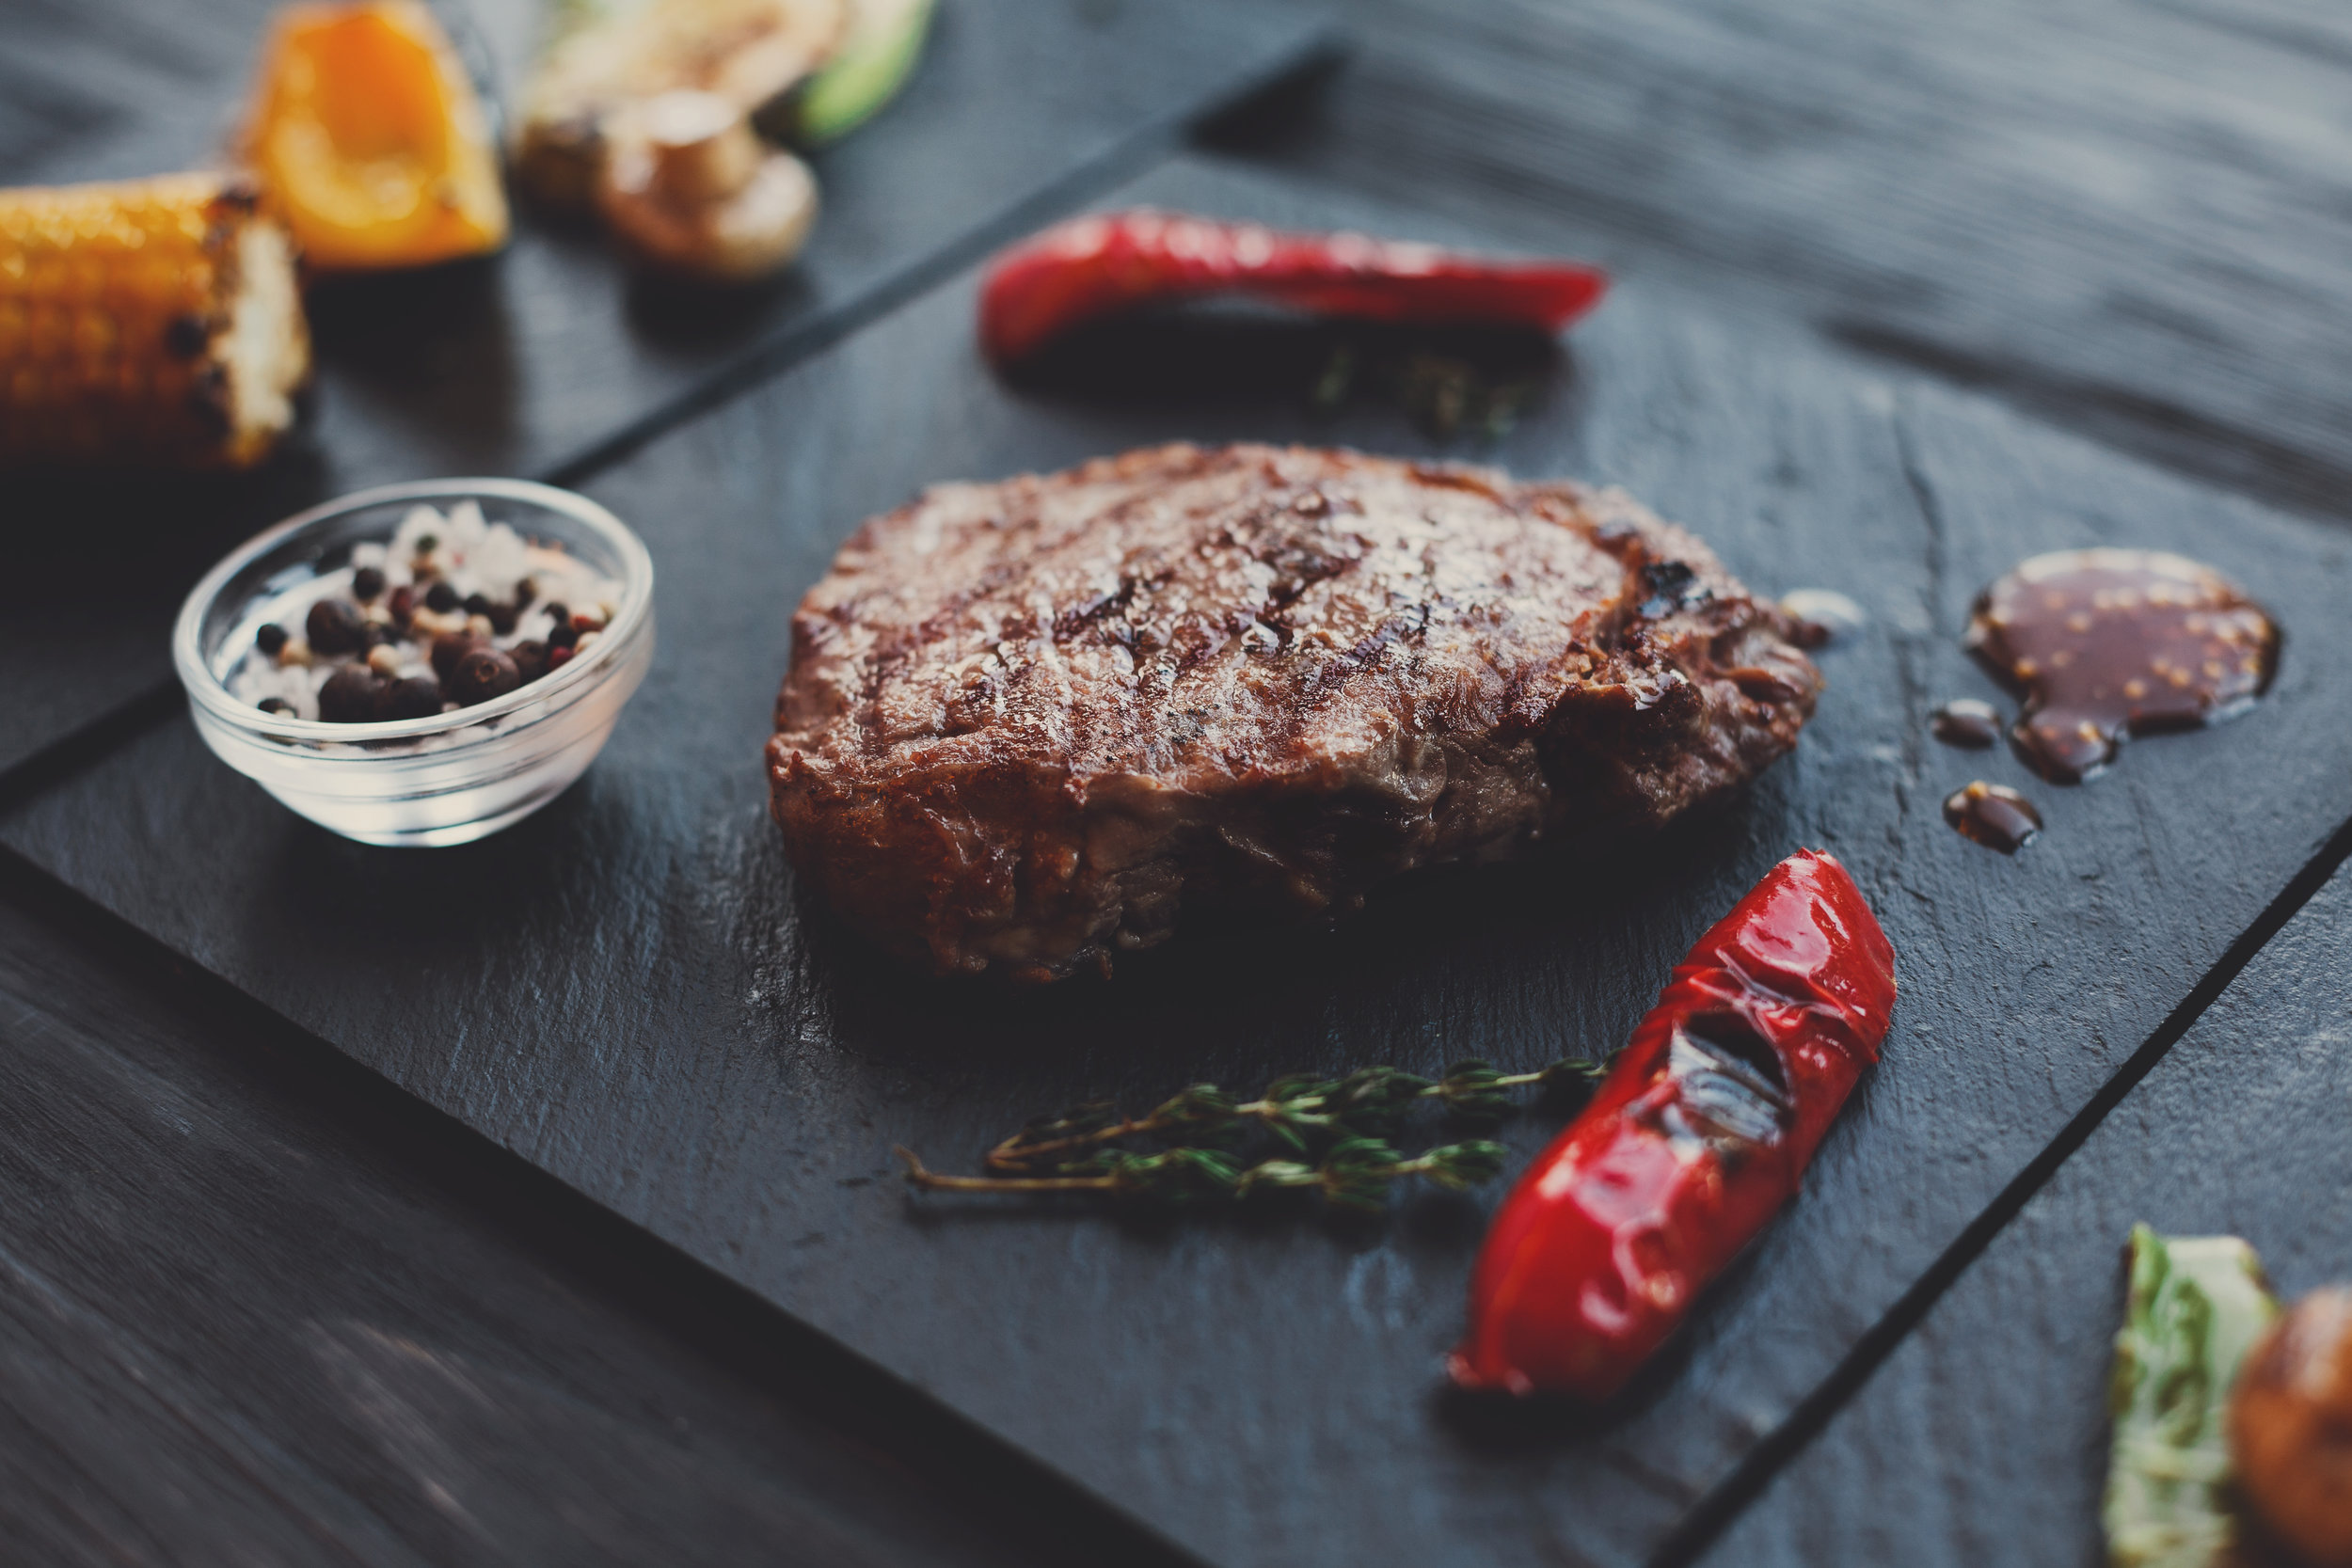 grilled-beef-steak-closeup-on-dark-wooden-table-PVGVZXS.jpg